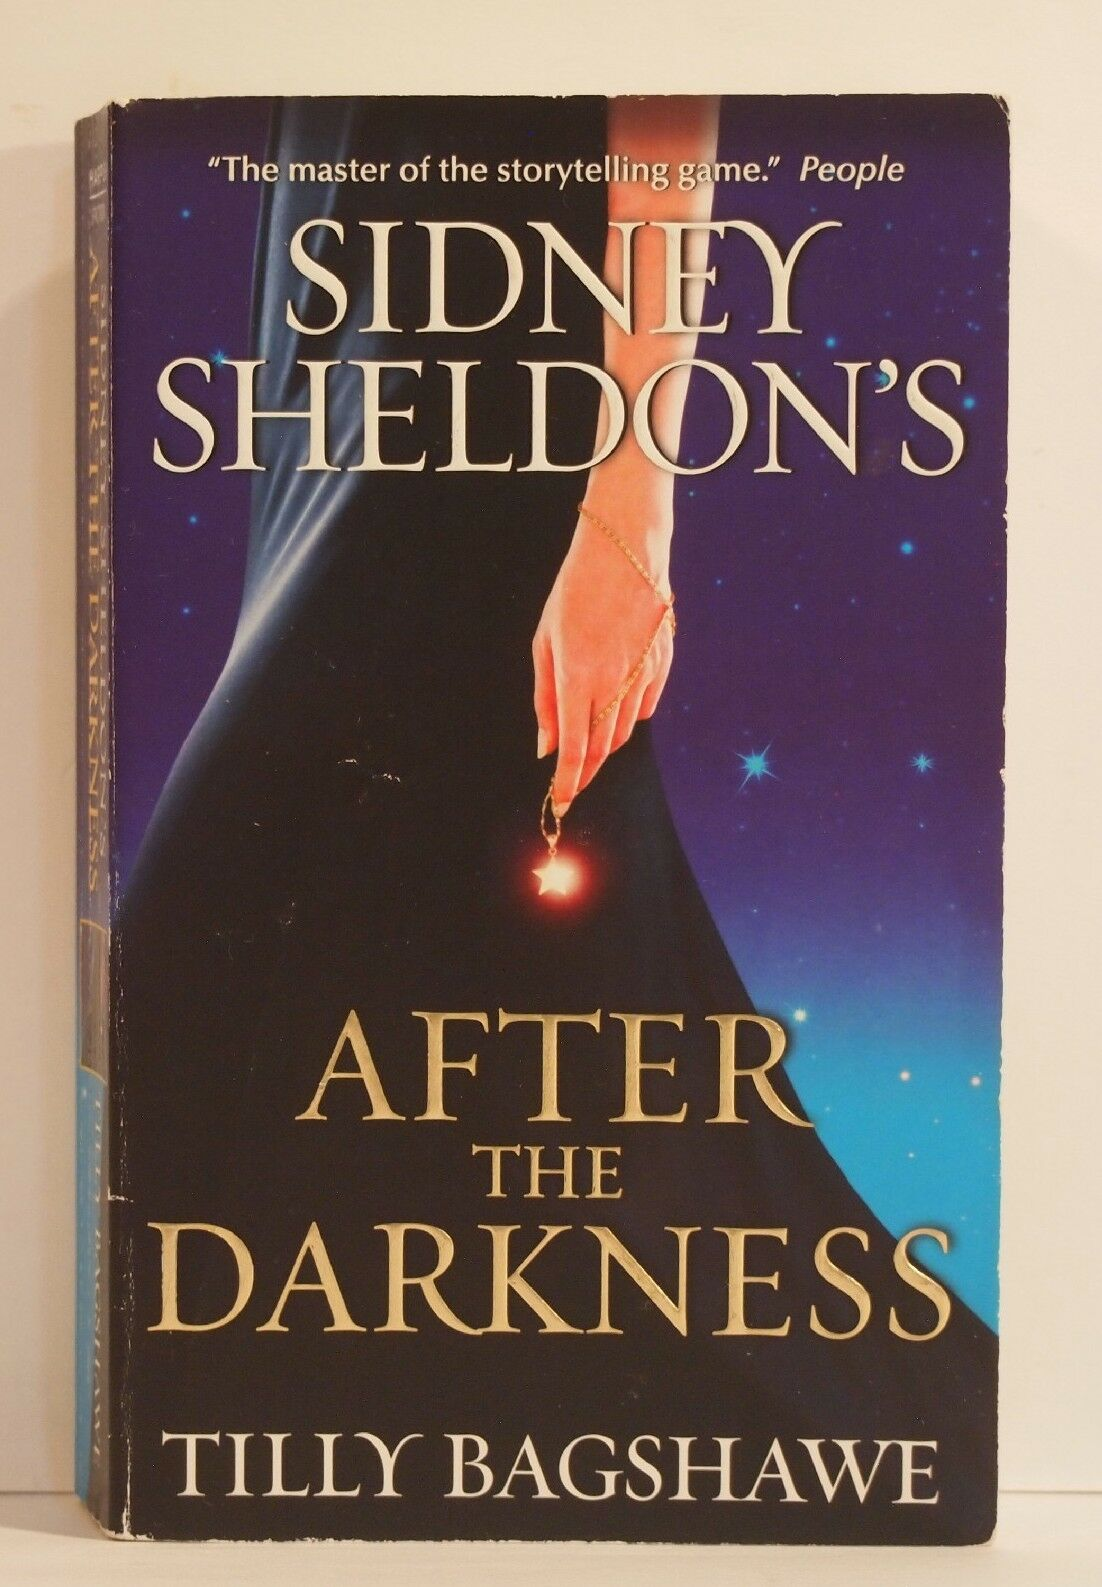 After the Darkness by Tilly Bagshawe and Sidney Sheldon (2010, Paperback) |  eBay